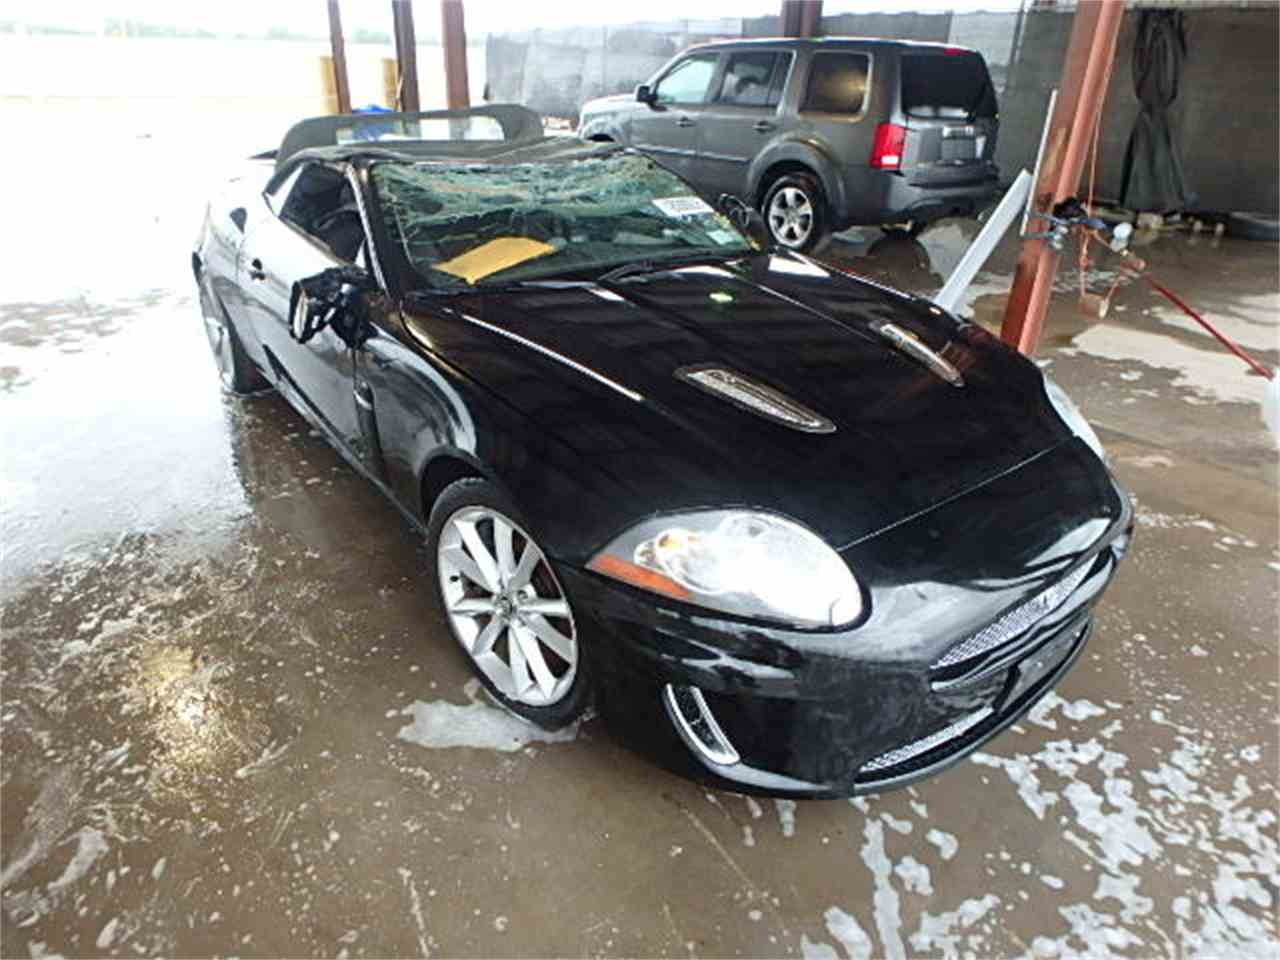 houston xk for seats xkr bowers xenons keyless alloys details leather wood nav pwr coupe sale vehicle wilkins jaguar photo mls supercharged